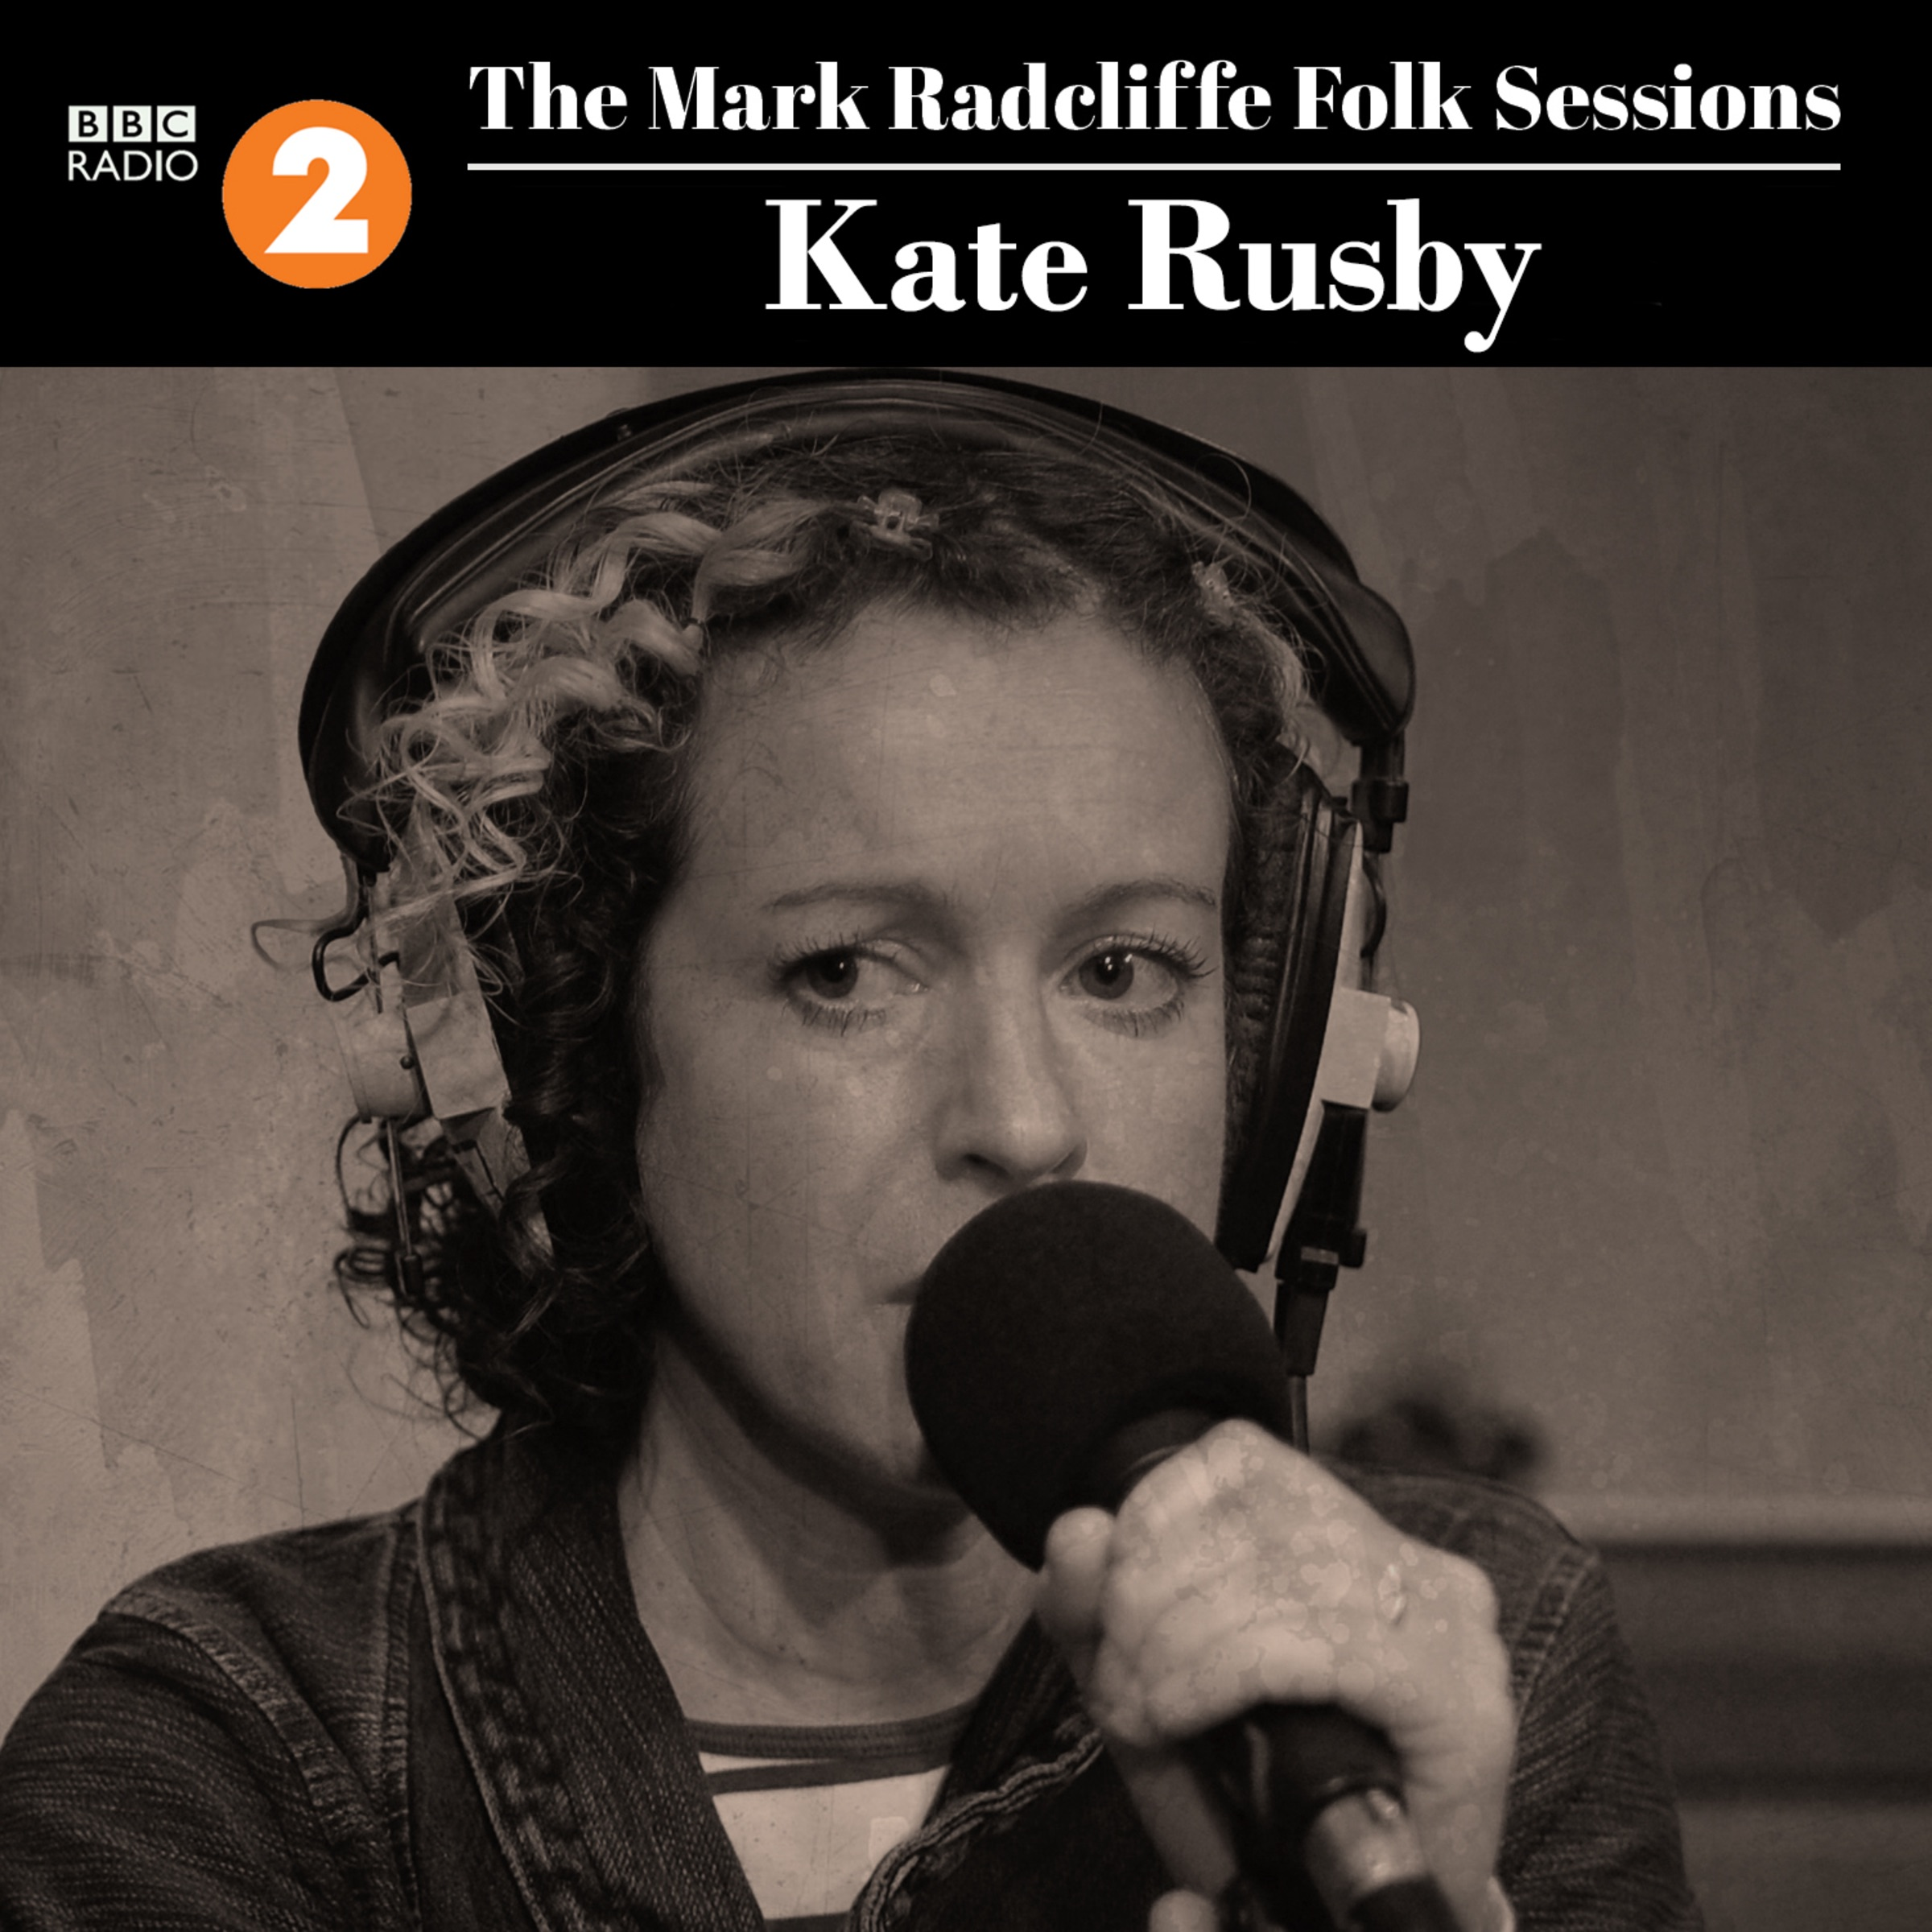 The Mark Radcliffe Folk Sessions: Kate Rusby - Single